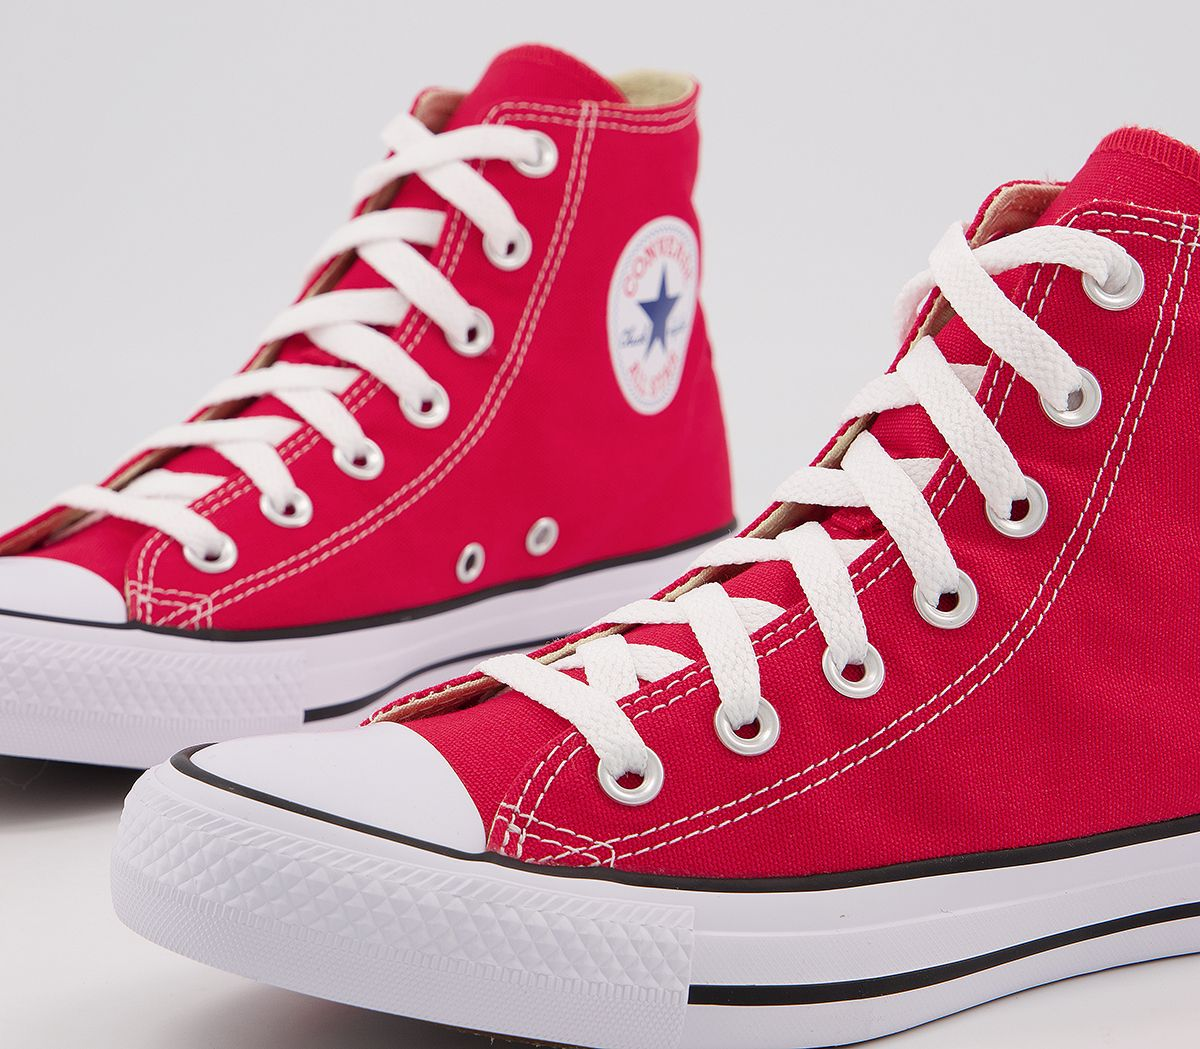 bbcd2522161afe Converse All Star Hi Red Canvas - Unisex Sports